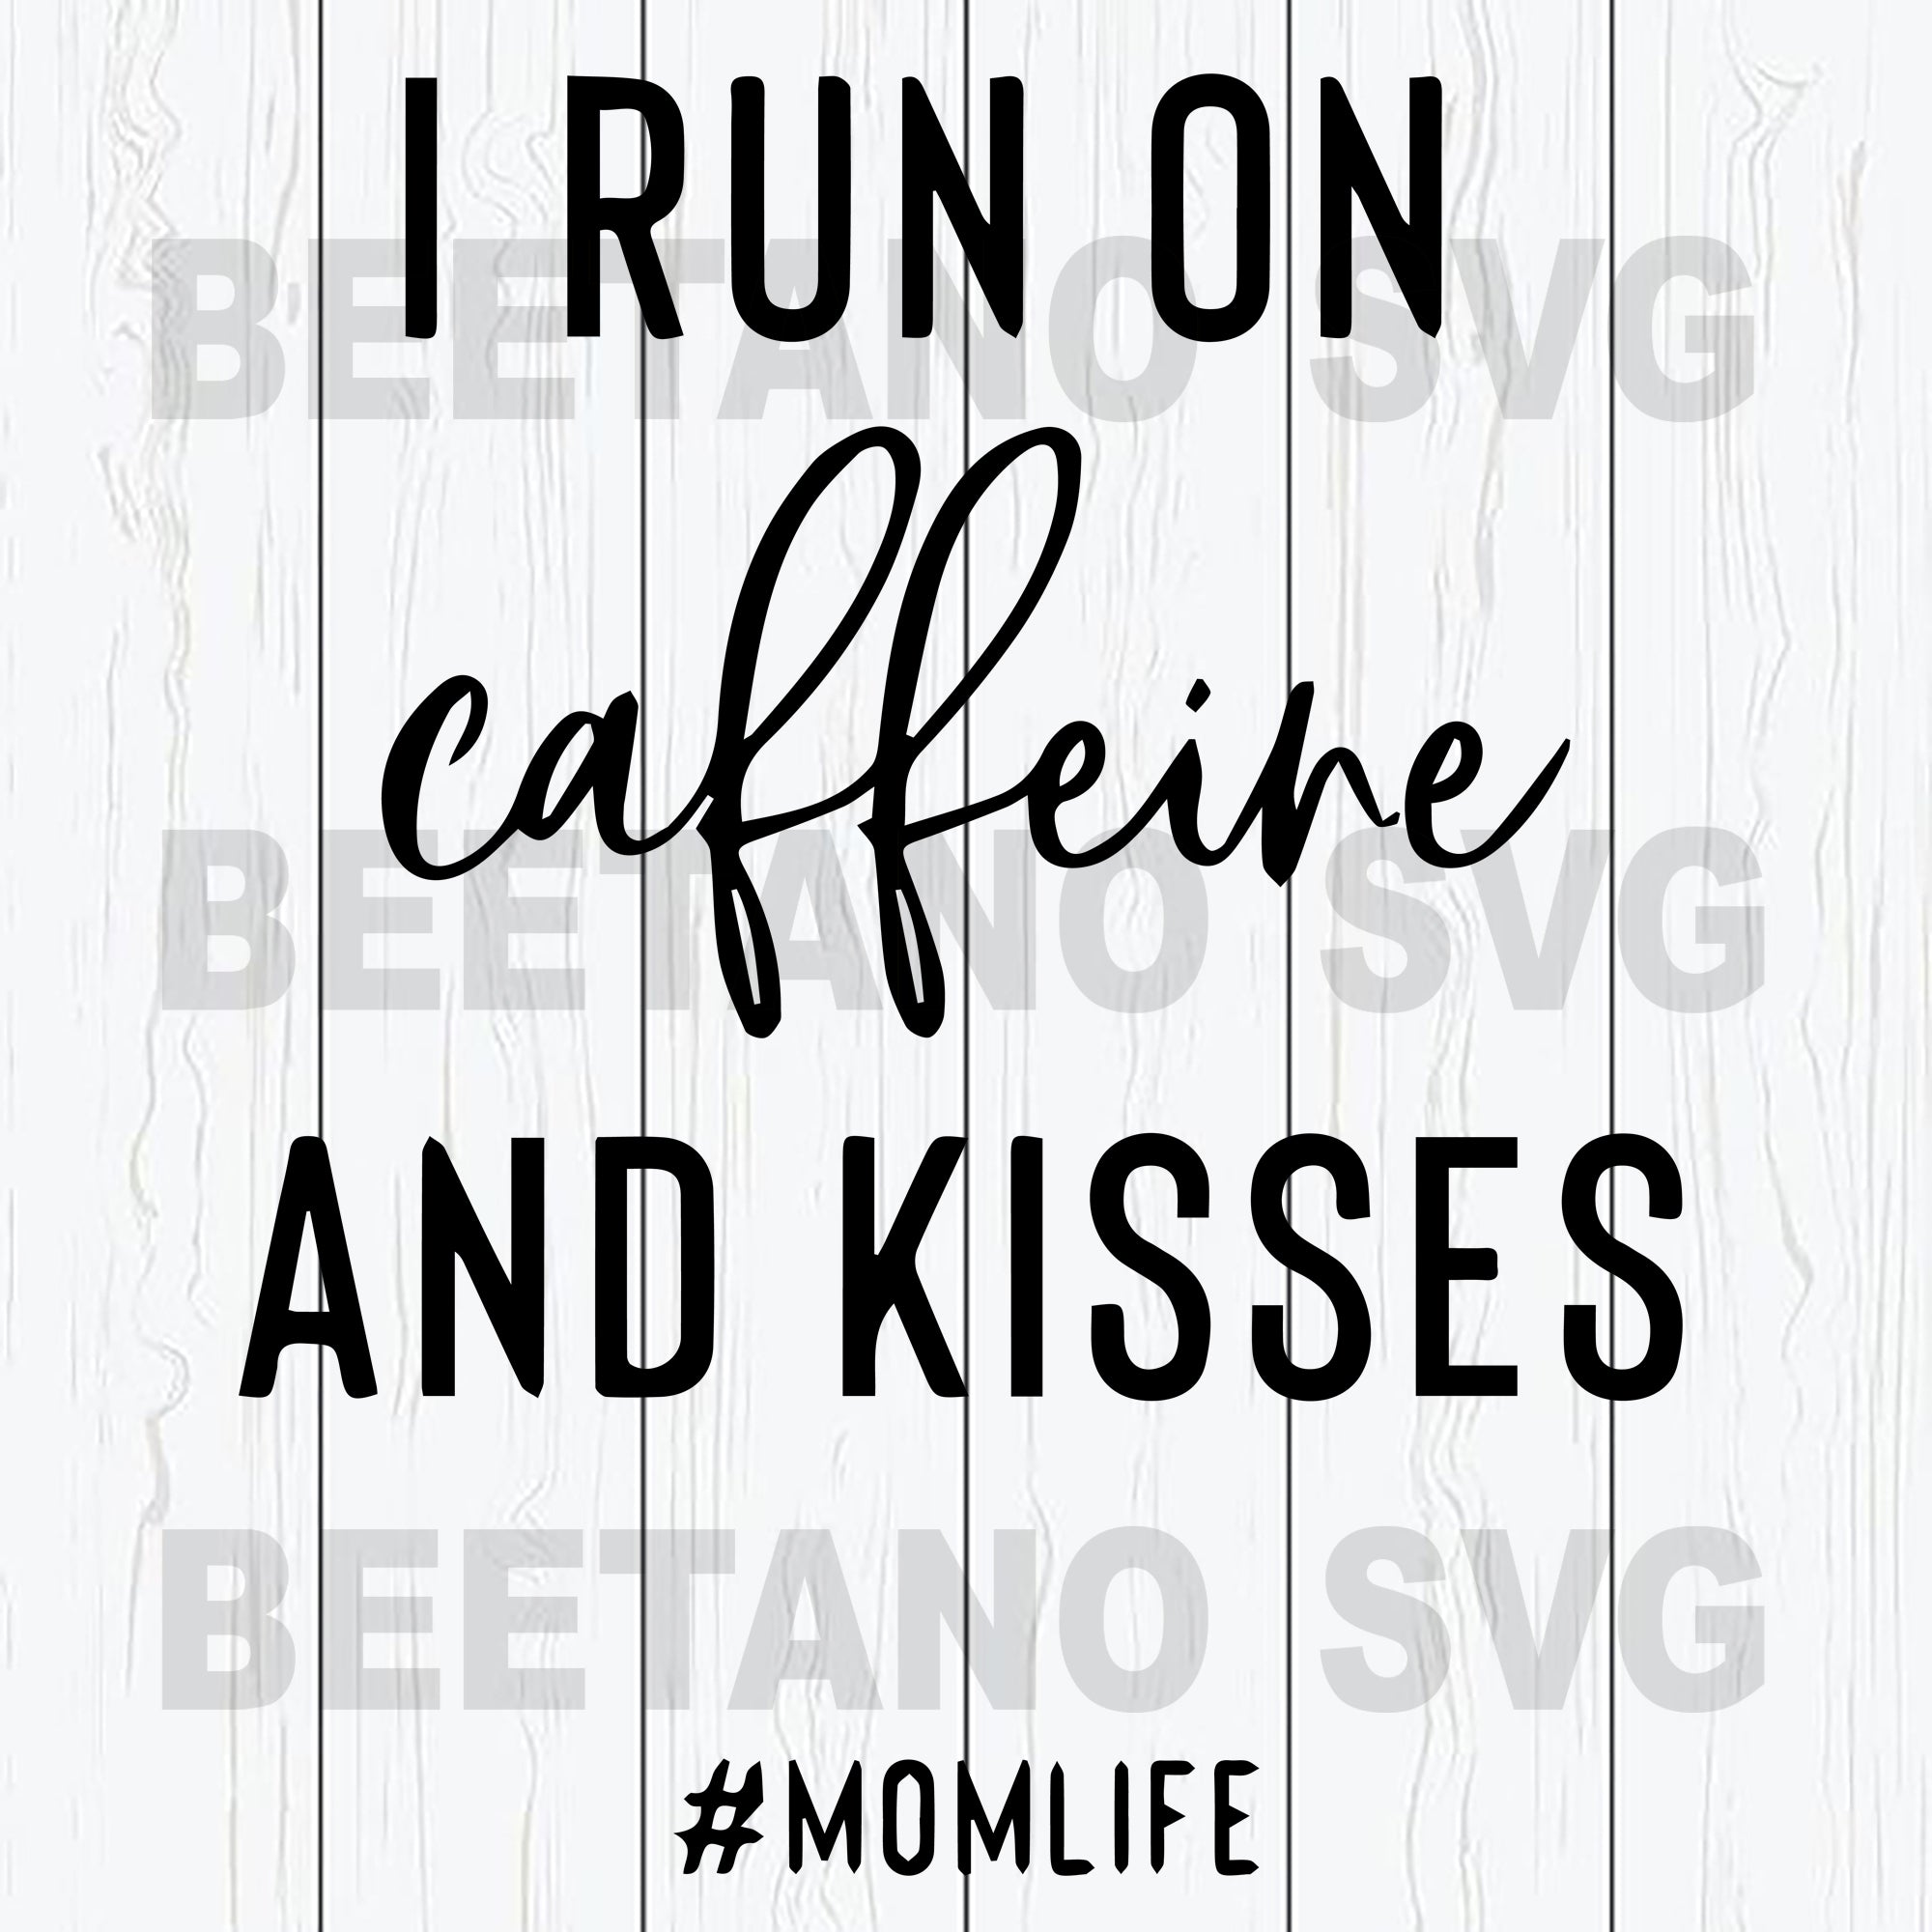 I Run On Caffeine And Kisses Momlife Svg Files, Momlife Svg, Mother Svg